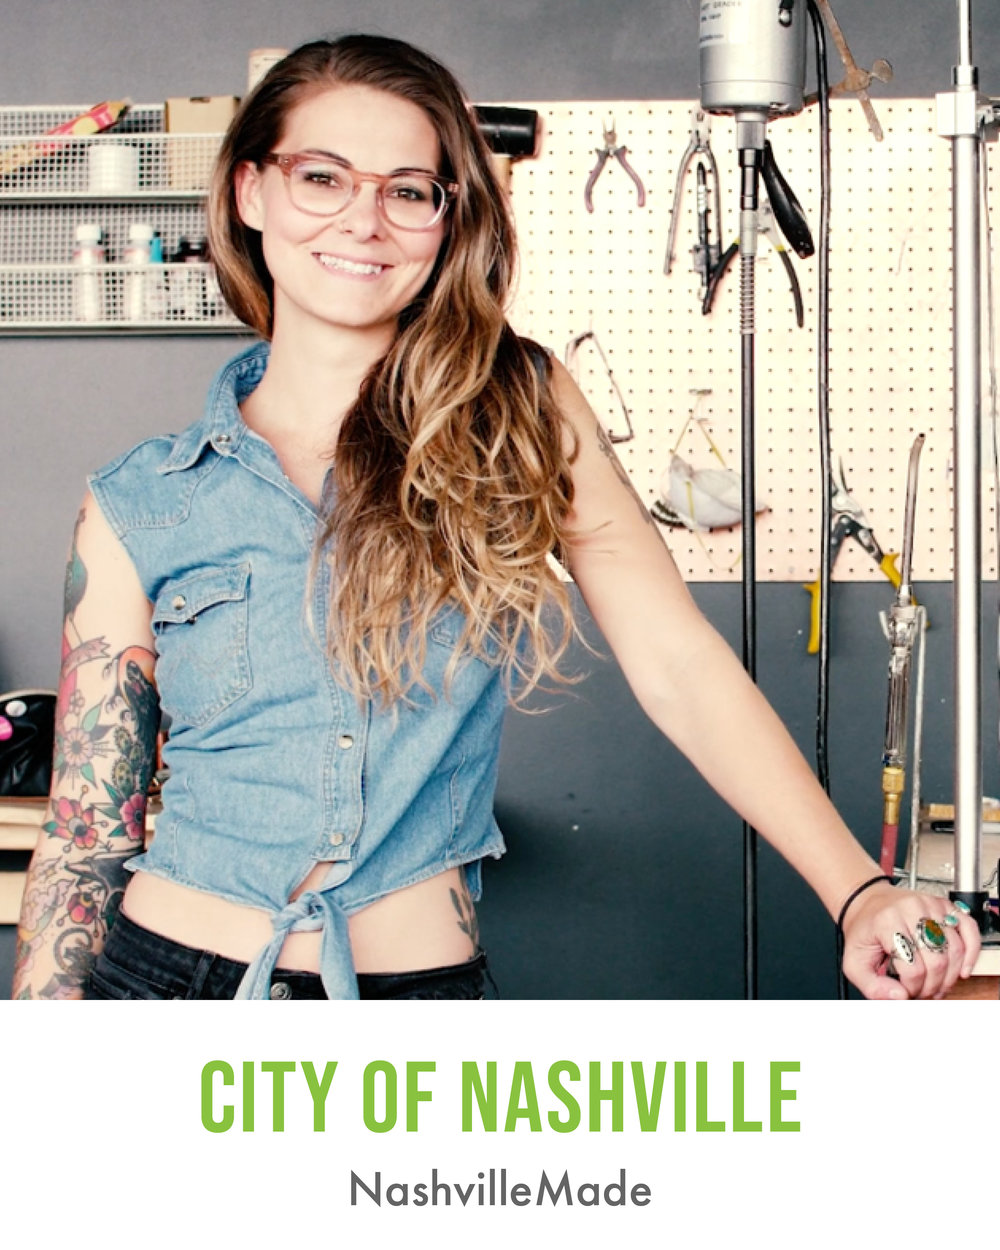 City of Nashville NashvilleMade